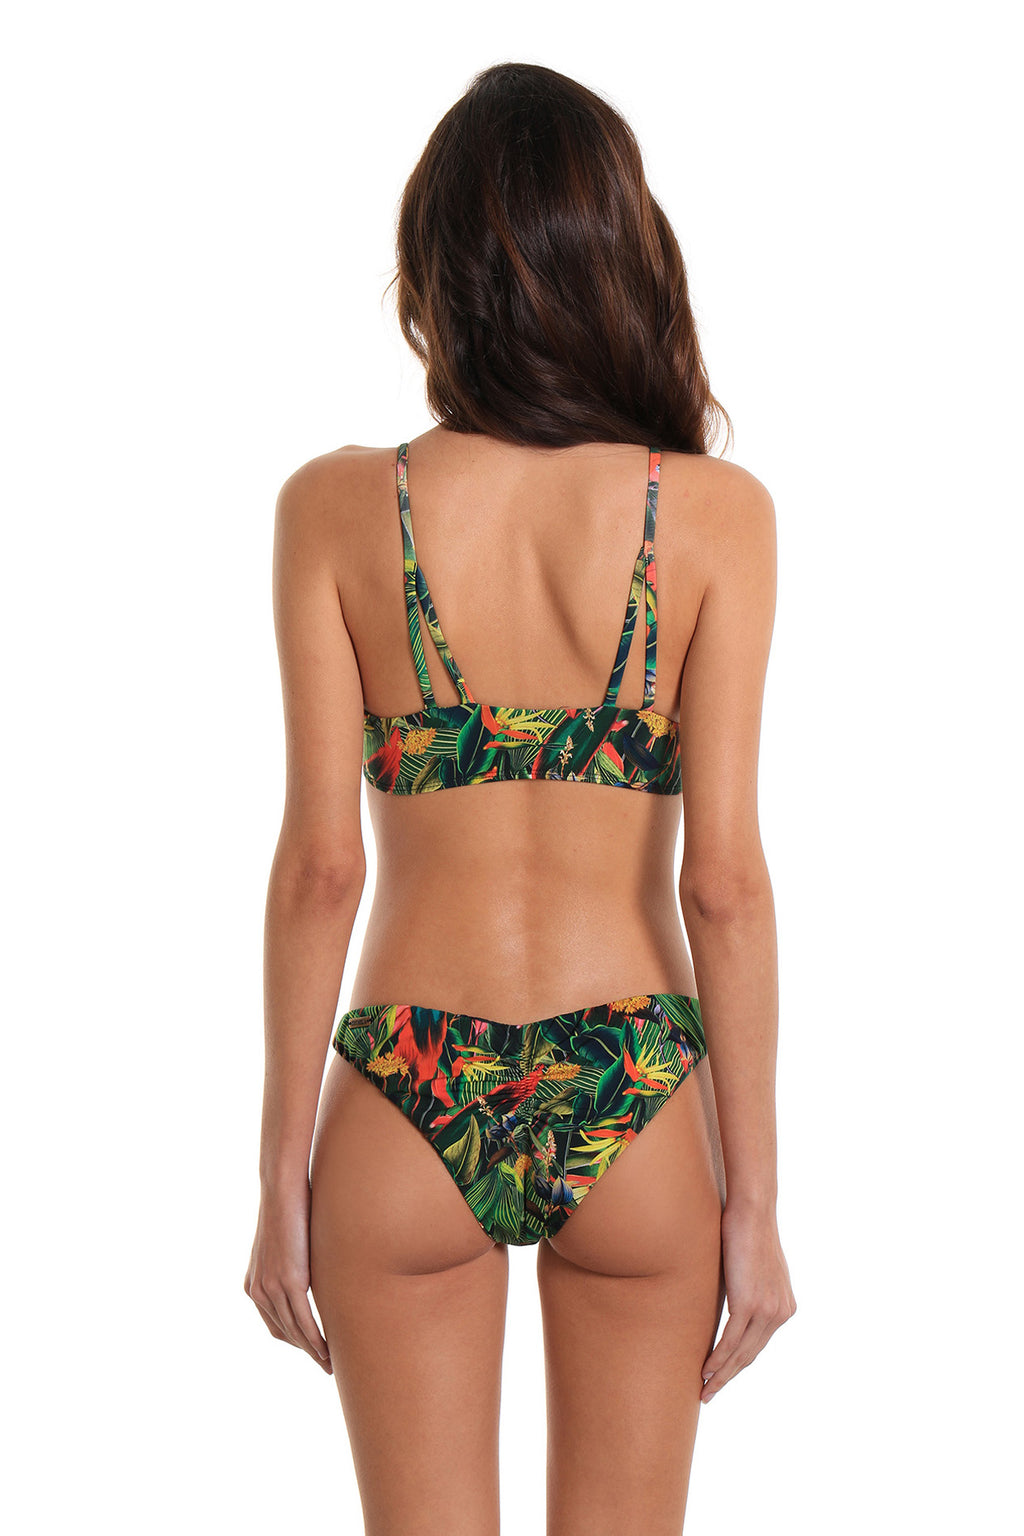 Bikini Two-Piece Swimsuit Arpoador Tropicale